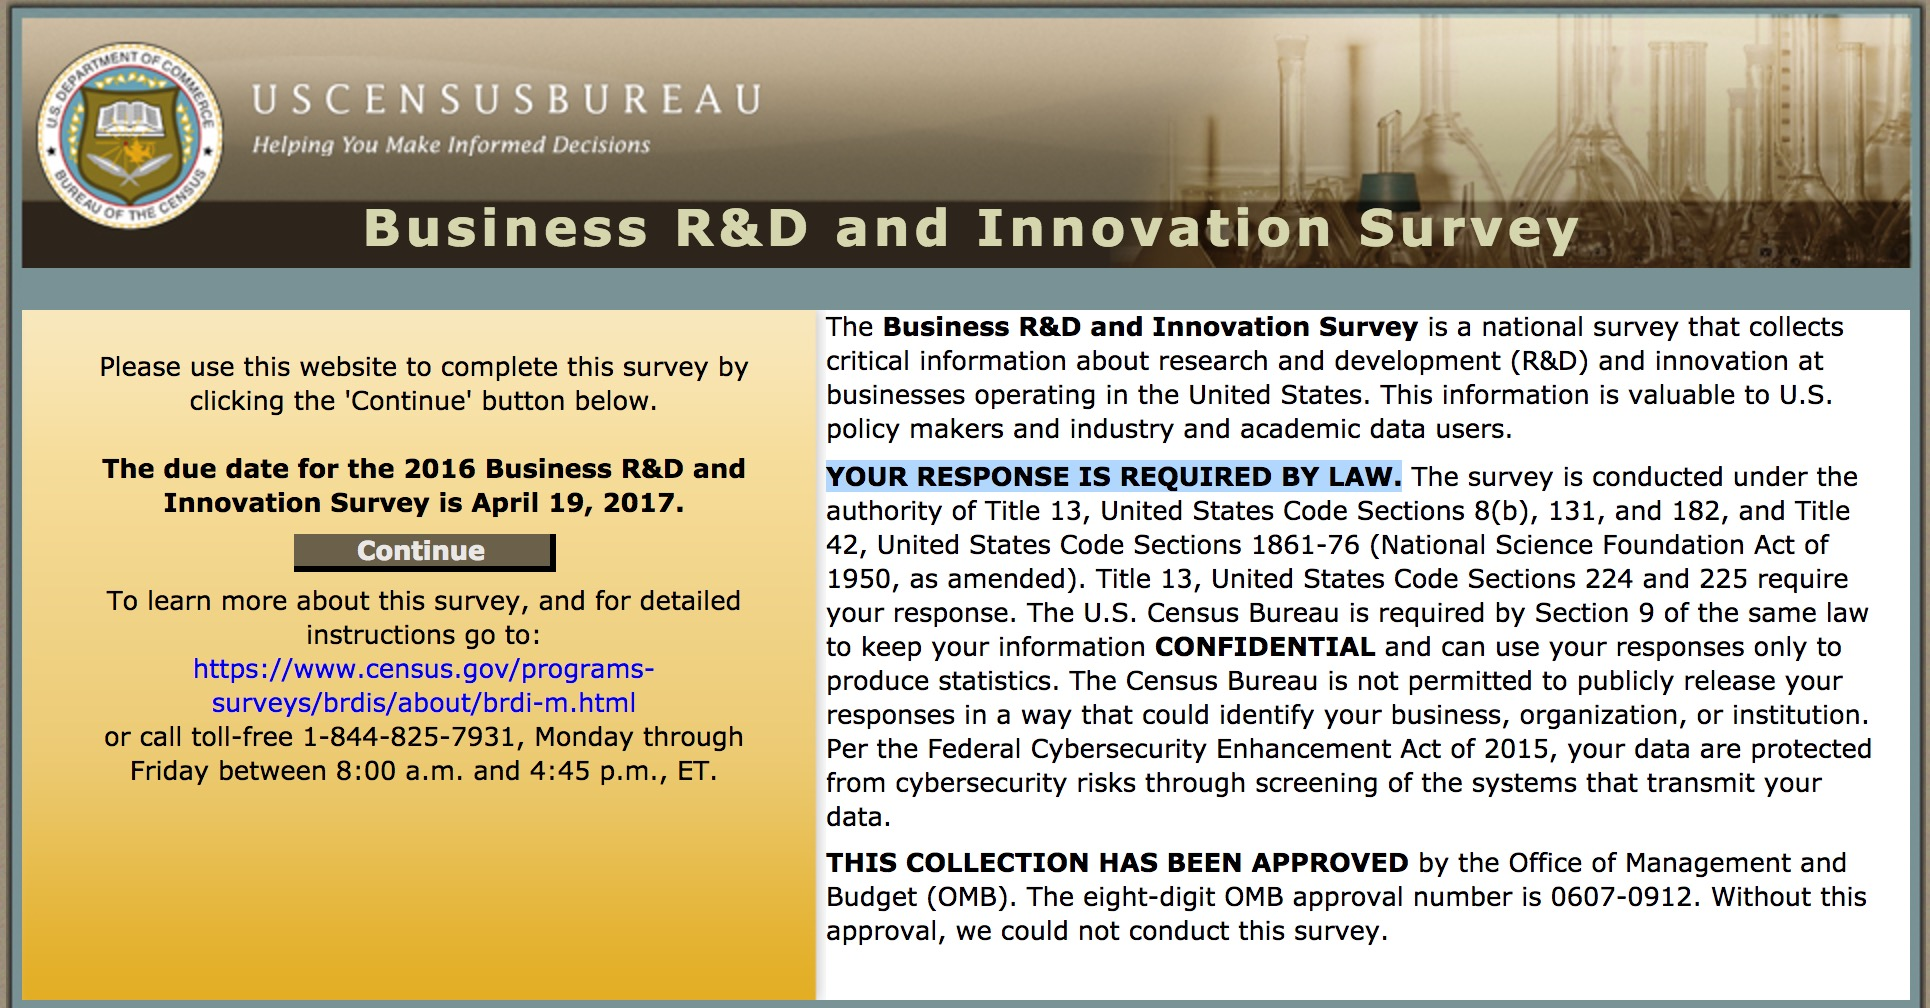 You are currently viewing 2016 Business R&D and Innovation Survey